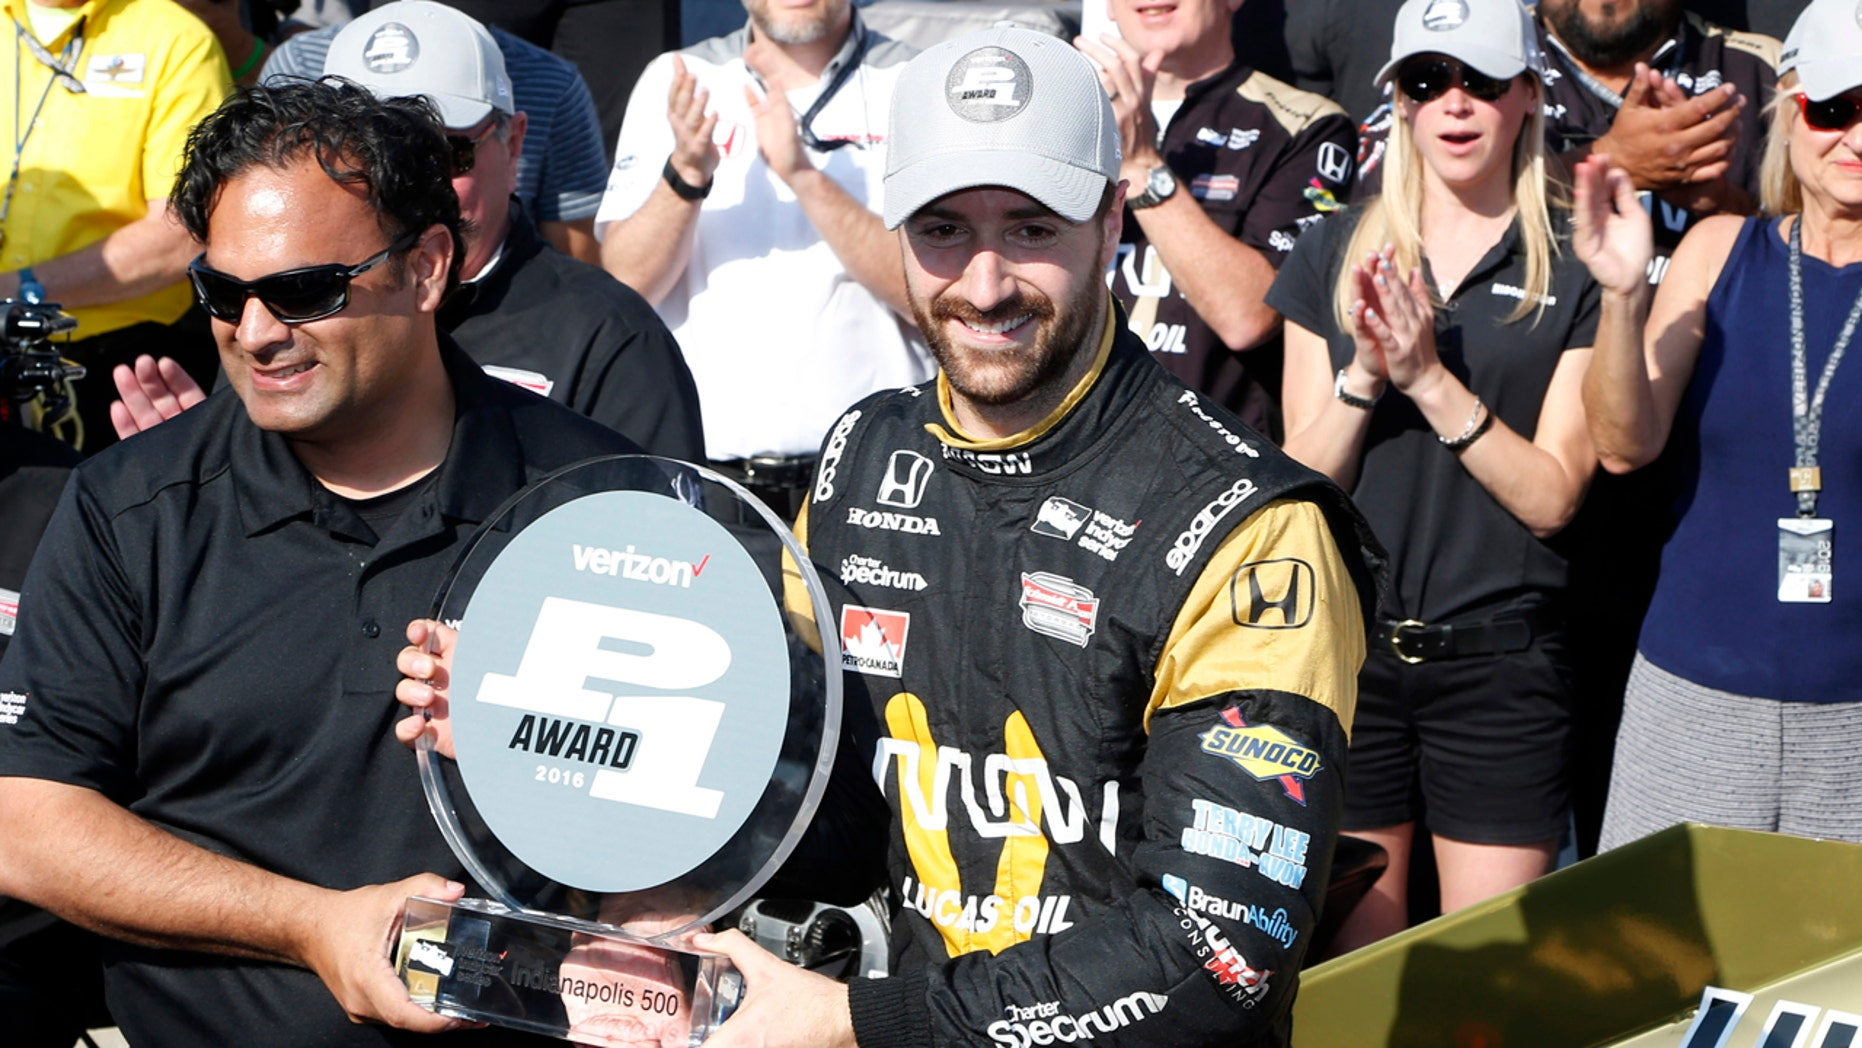 May 22, 2016; Indianapolis, IN, USA; Verizon Indy Car driver James Hinchcliffe accepts the pole award after winning the pole as the fastest qualifier during qualifications for the Indianapolis 500 at Indianapolis Motor Speedway. Mandatory Credit: Brian Spurlock-USA TODAY Sports - RTSFFWX